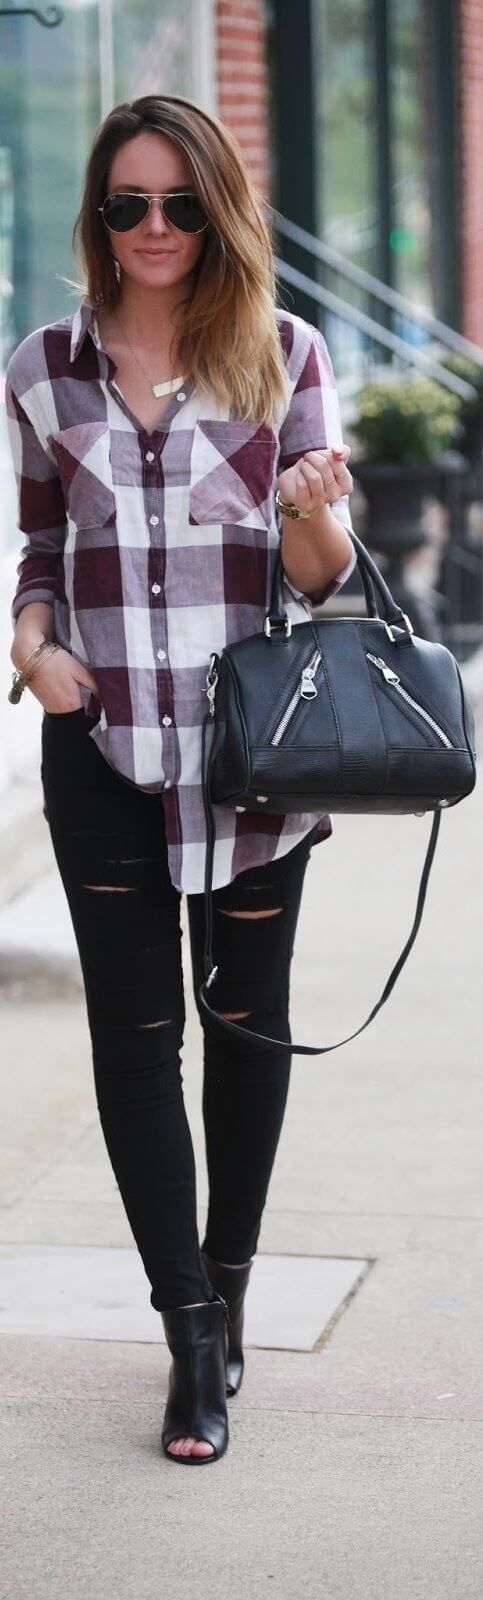 10 Cute Outfits with Plaid Shirts | Page 4 of 10